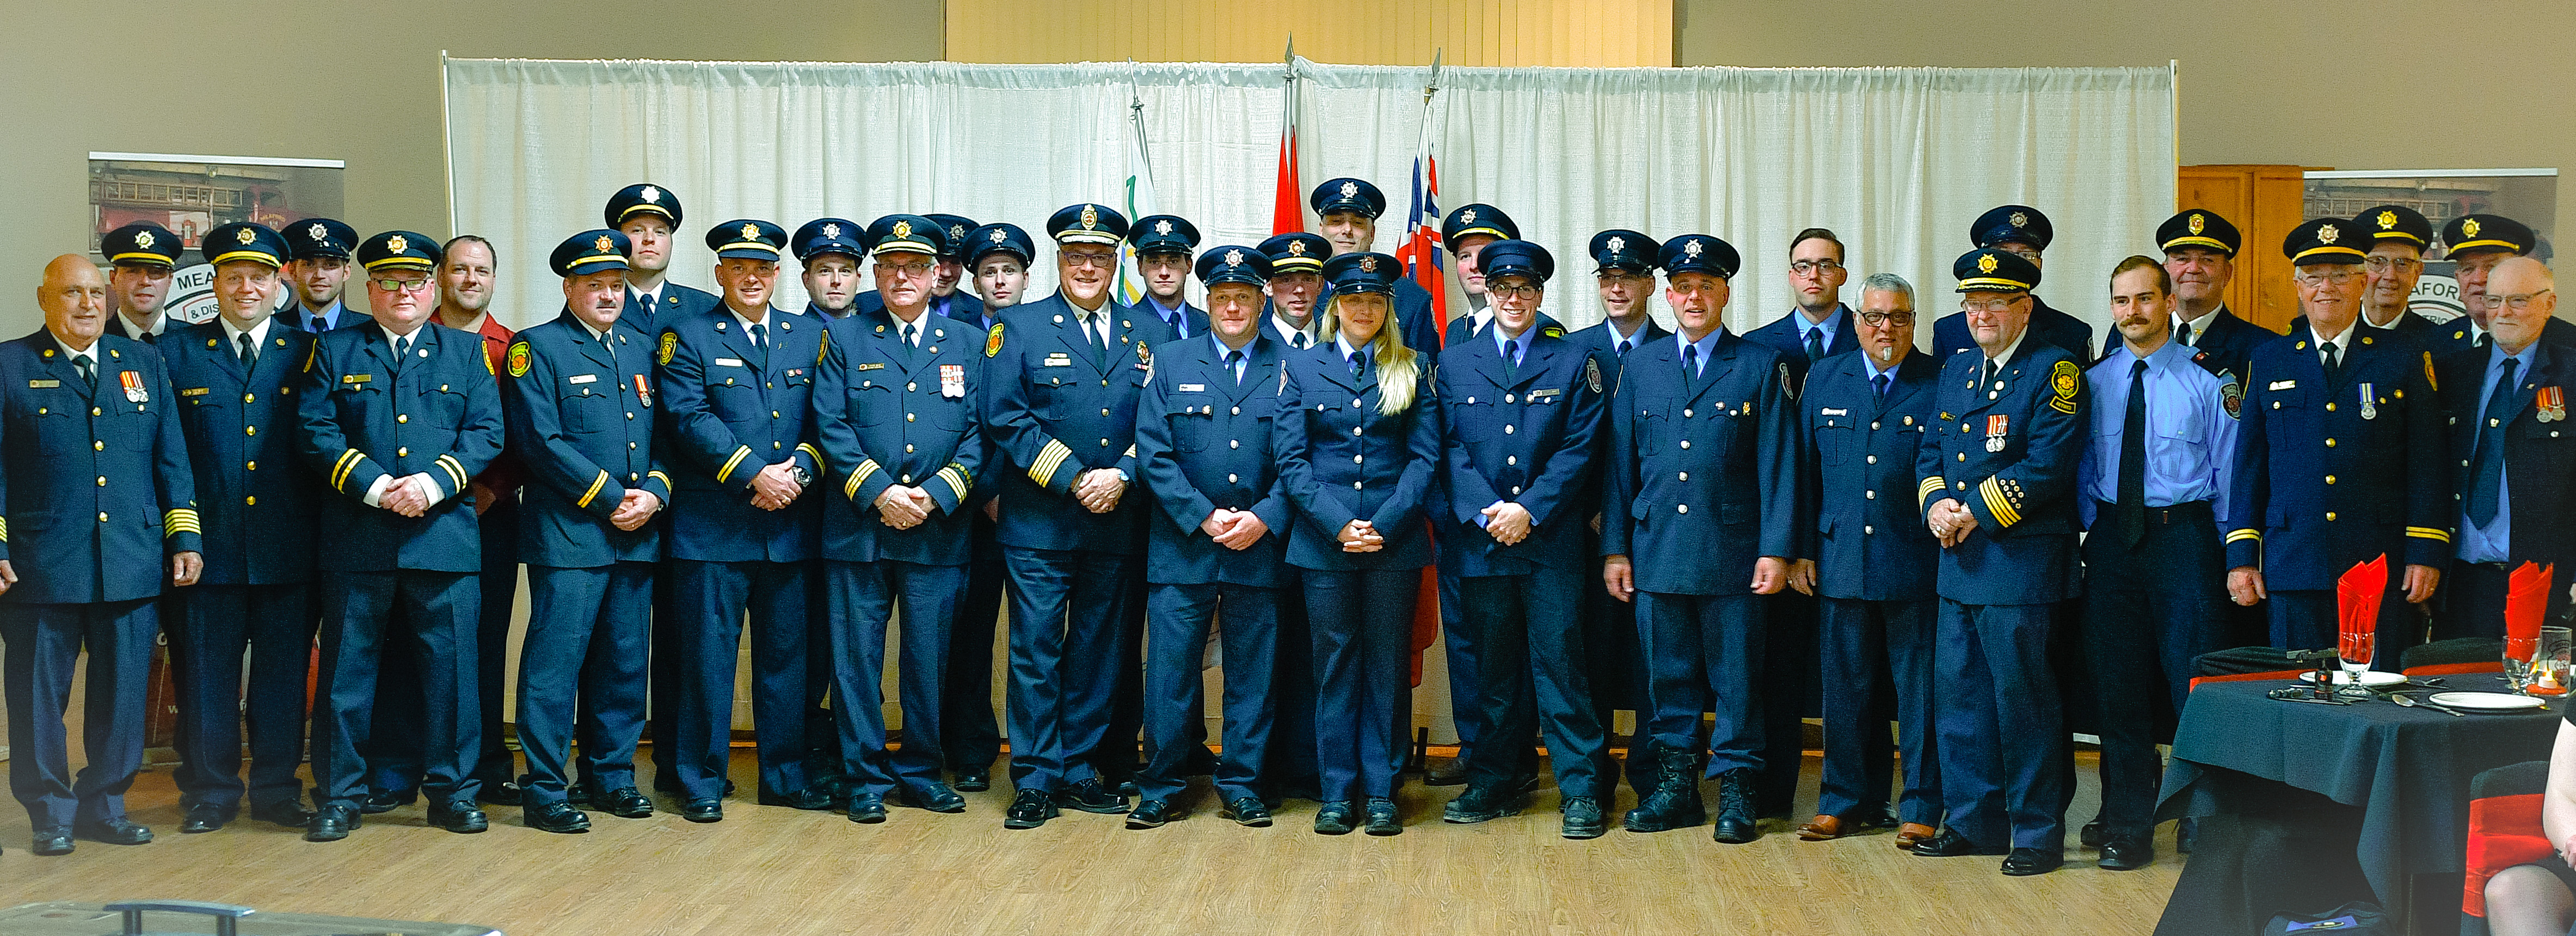 Meaford Firefighters group photo